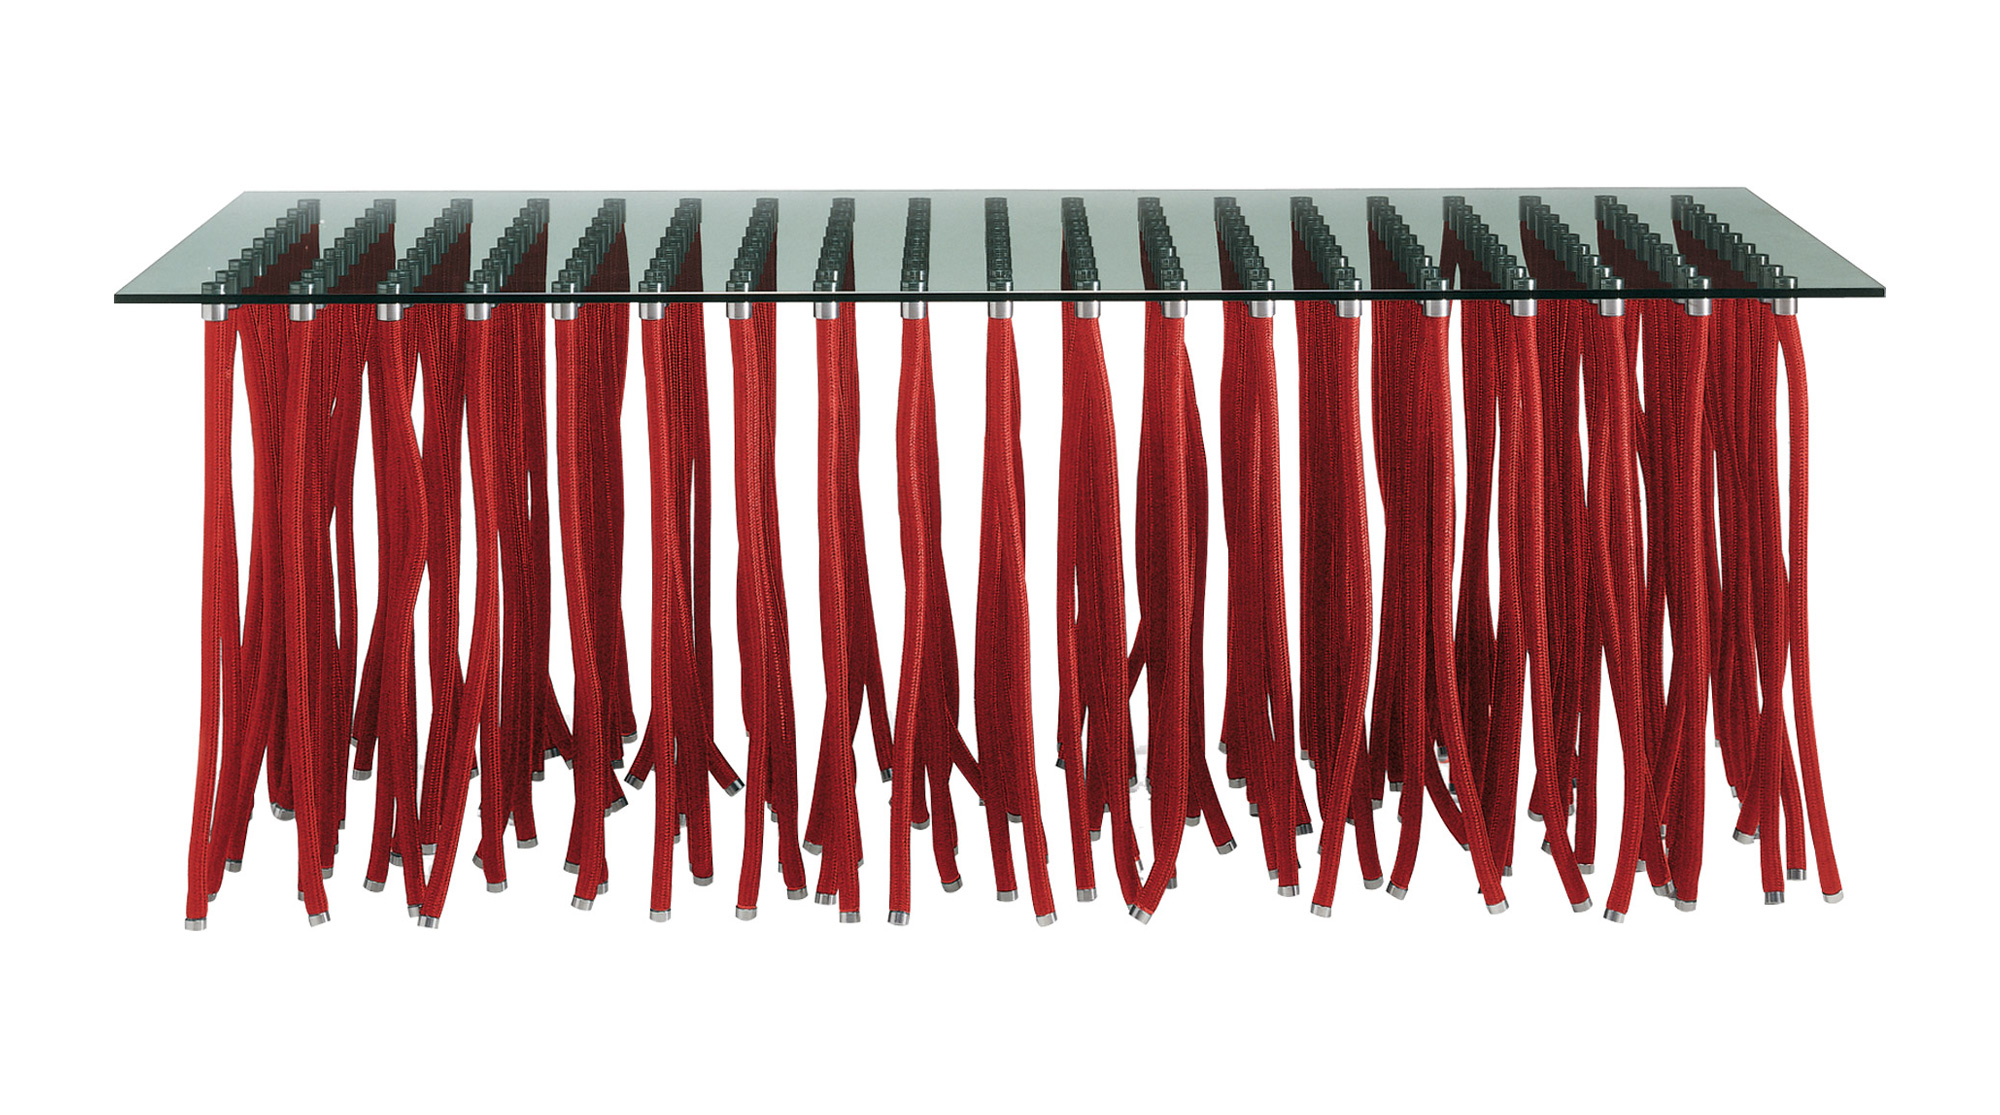 Org. Design by Fabio Novembre for Cappellini, 2001.